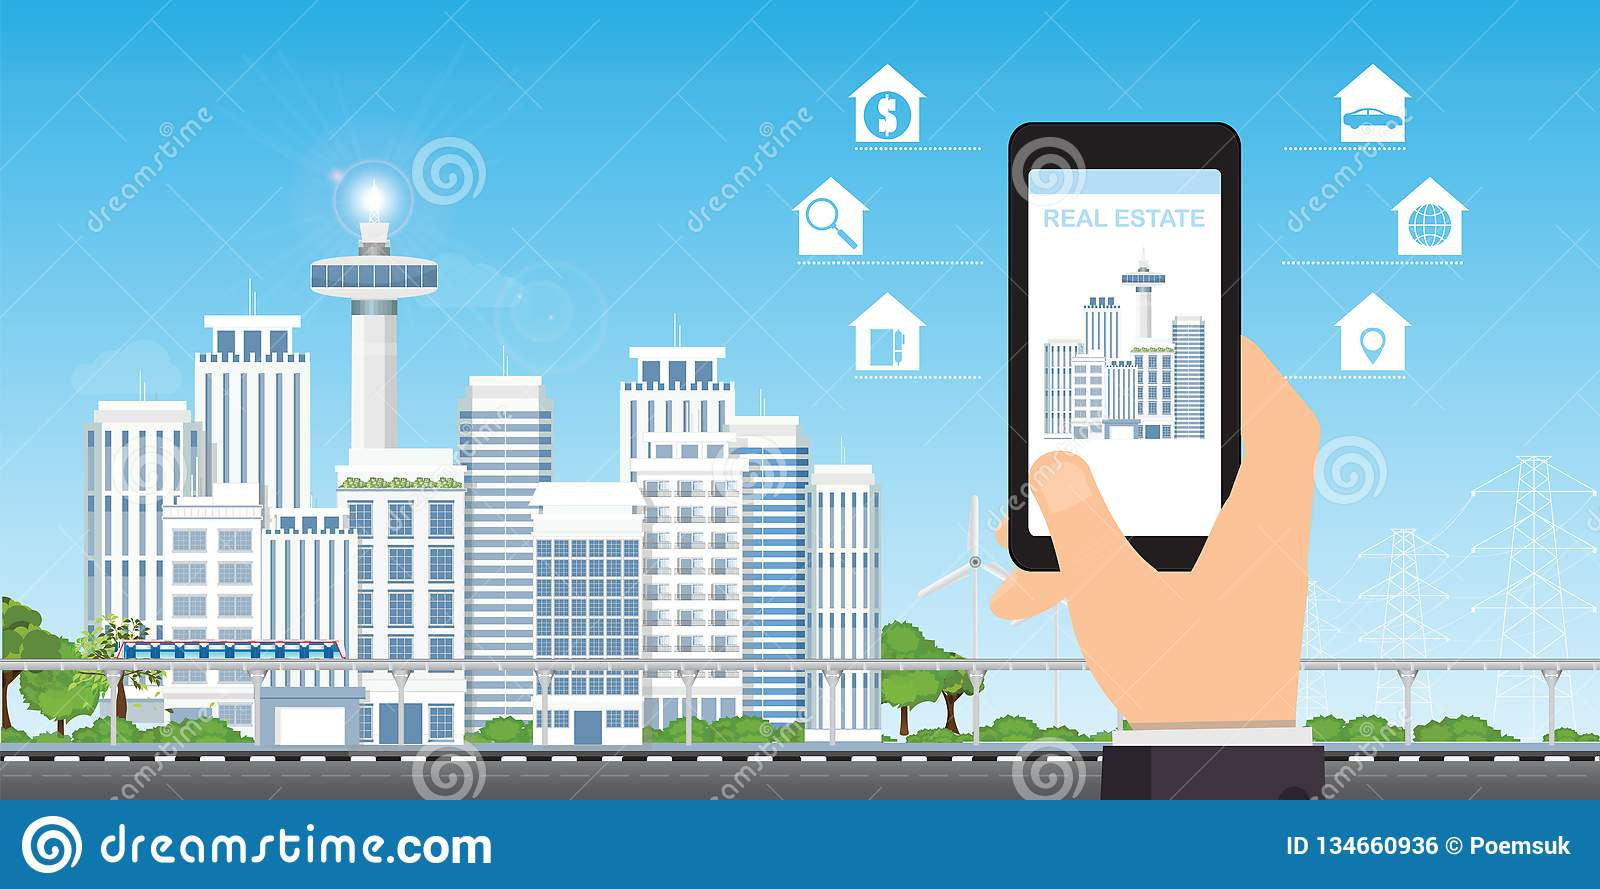 Real estate app concept on a mobile phone screen